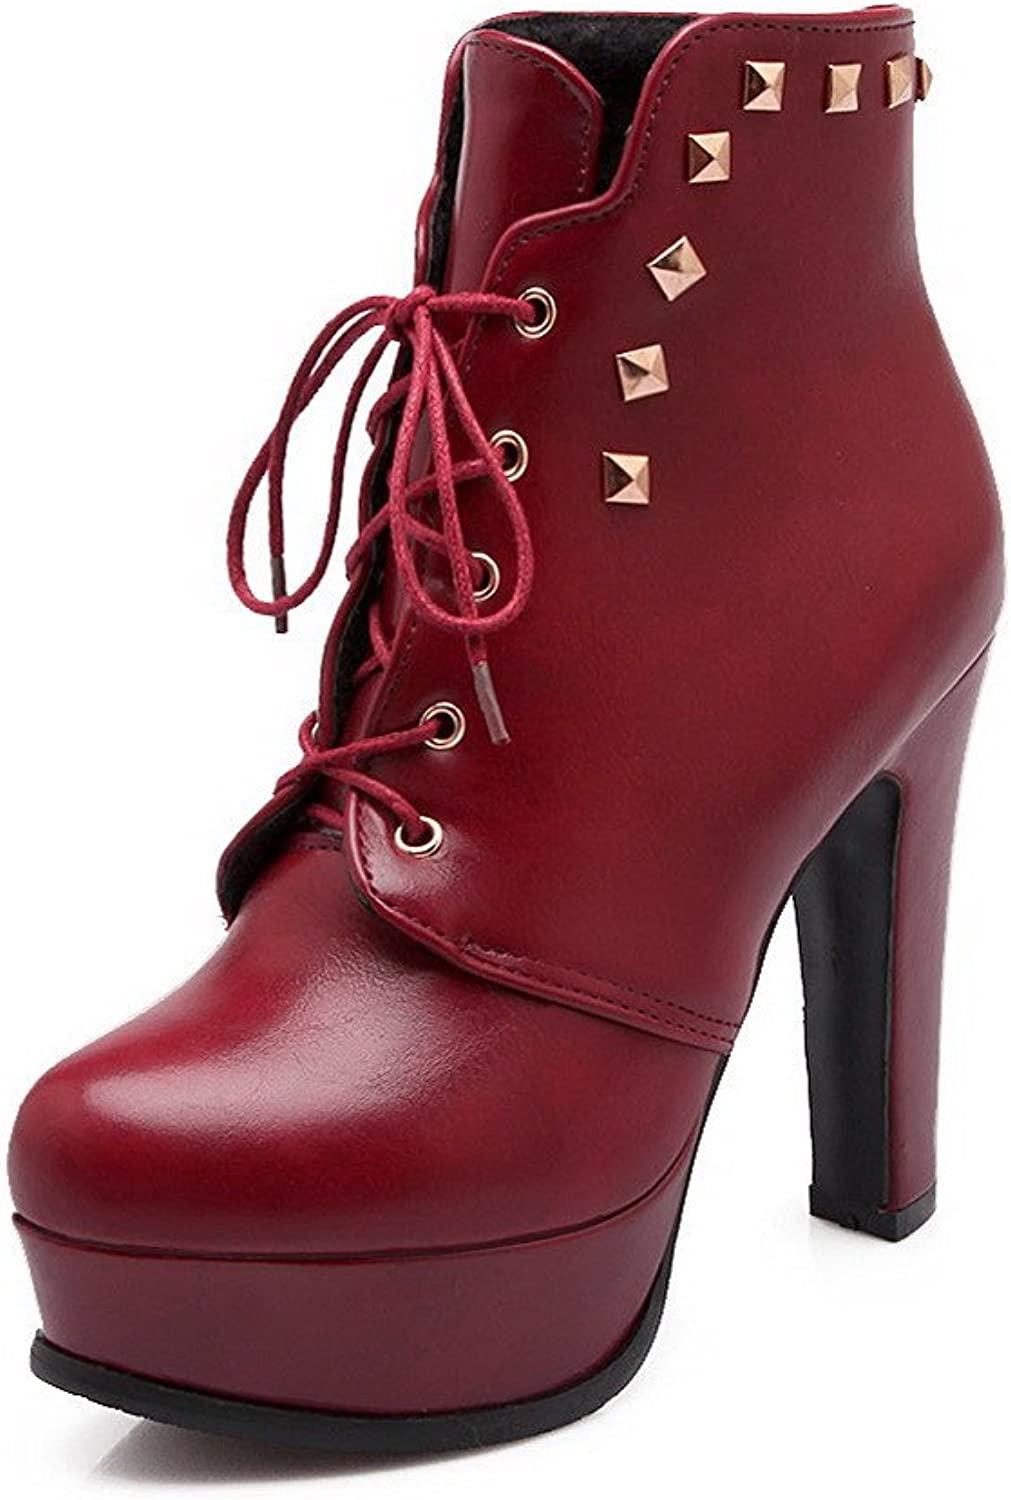 Weenfashion Women's High-Heels Closed Round Toe Nappa Low Top Boots